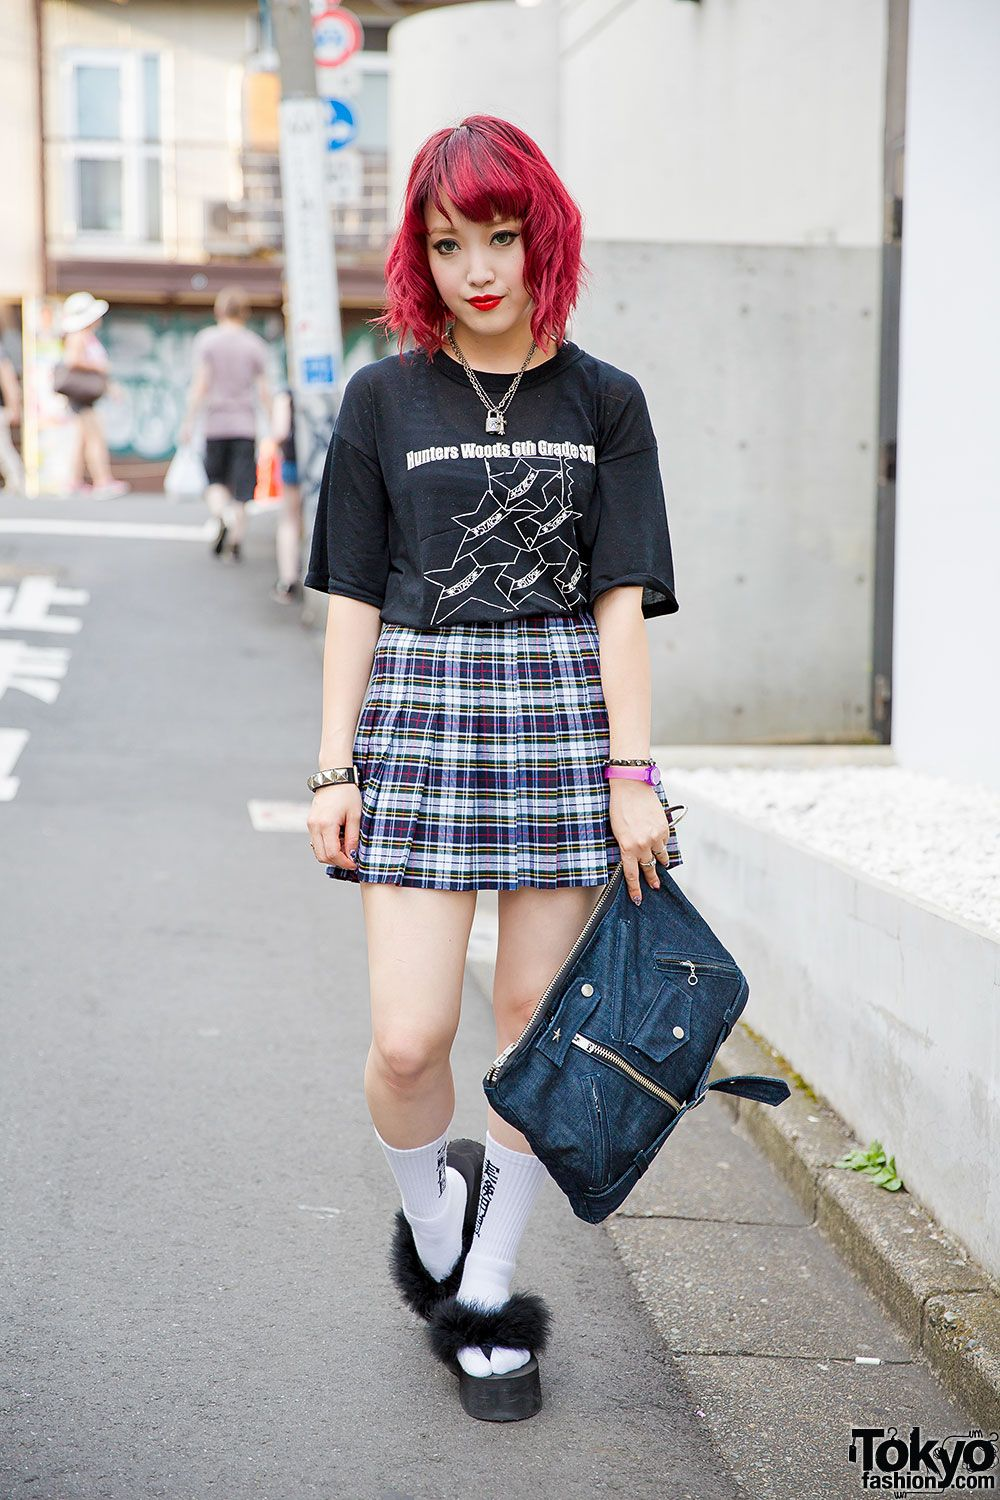 Meet Coco An Elle Girl Blogger And Vllivlli Harajuku Staffer With Cure Fuchsia Hair Coco S